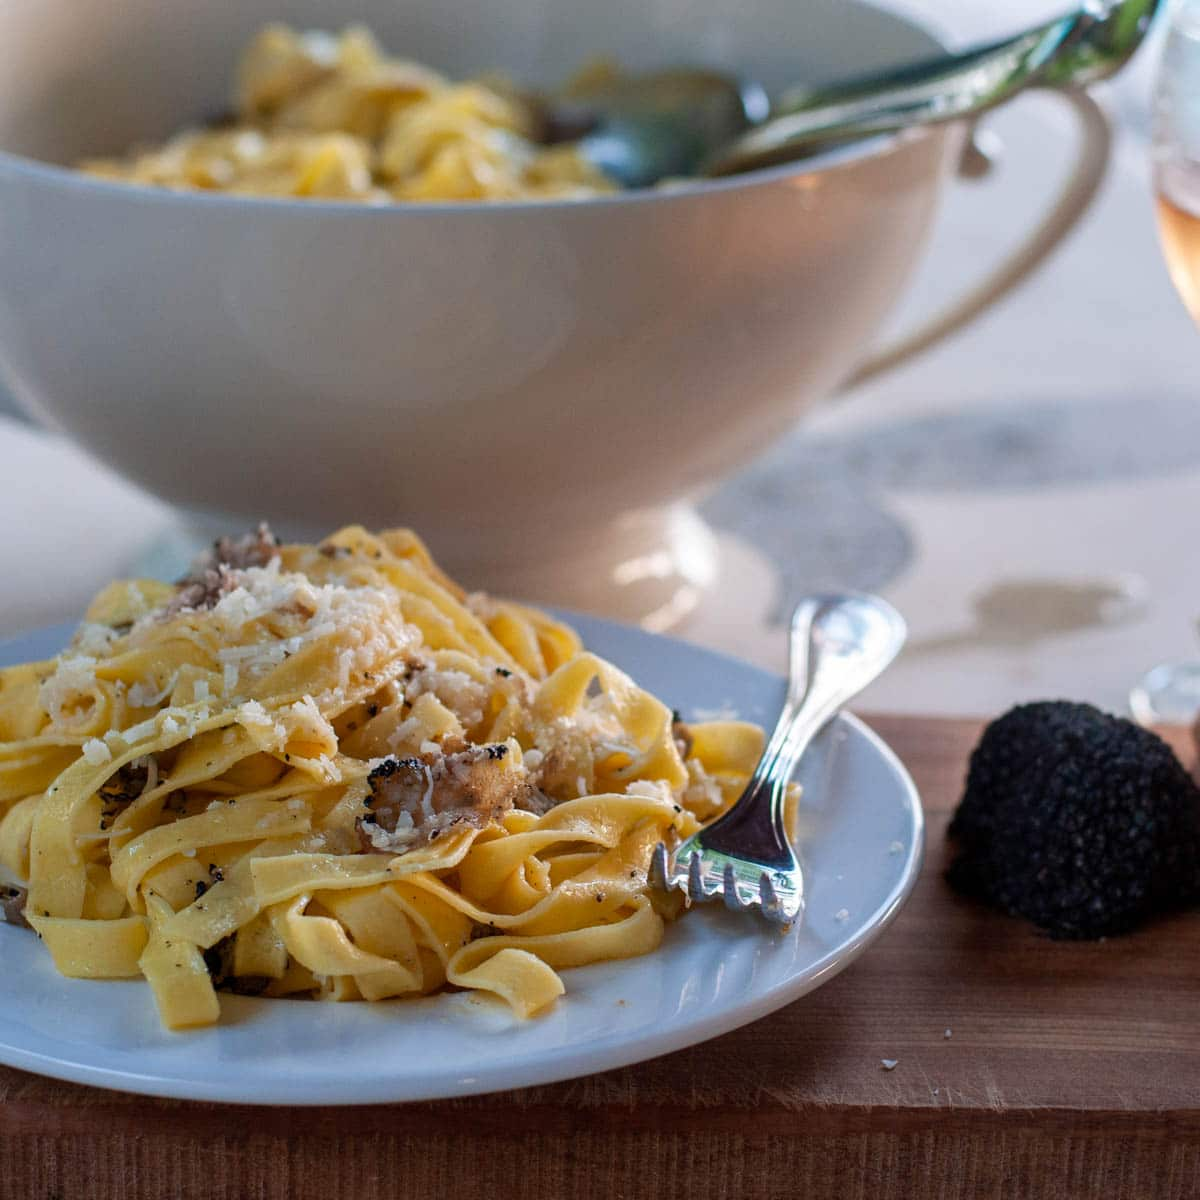 Pasta with truffle served on a plate truffle on the side and serving dish in the background